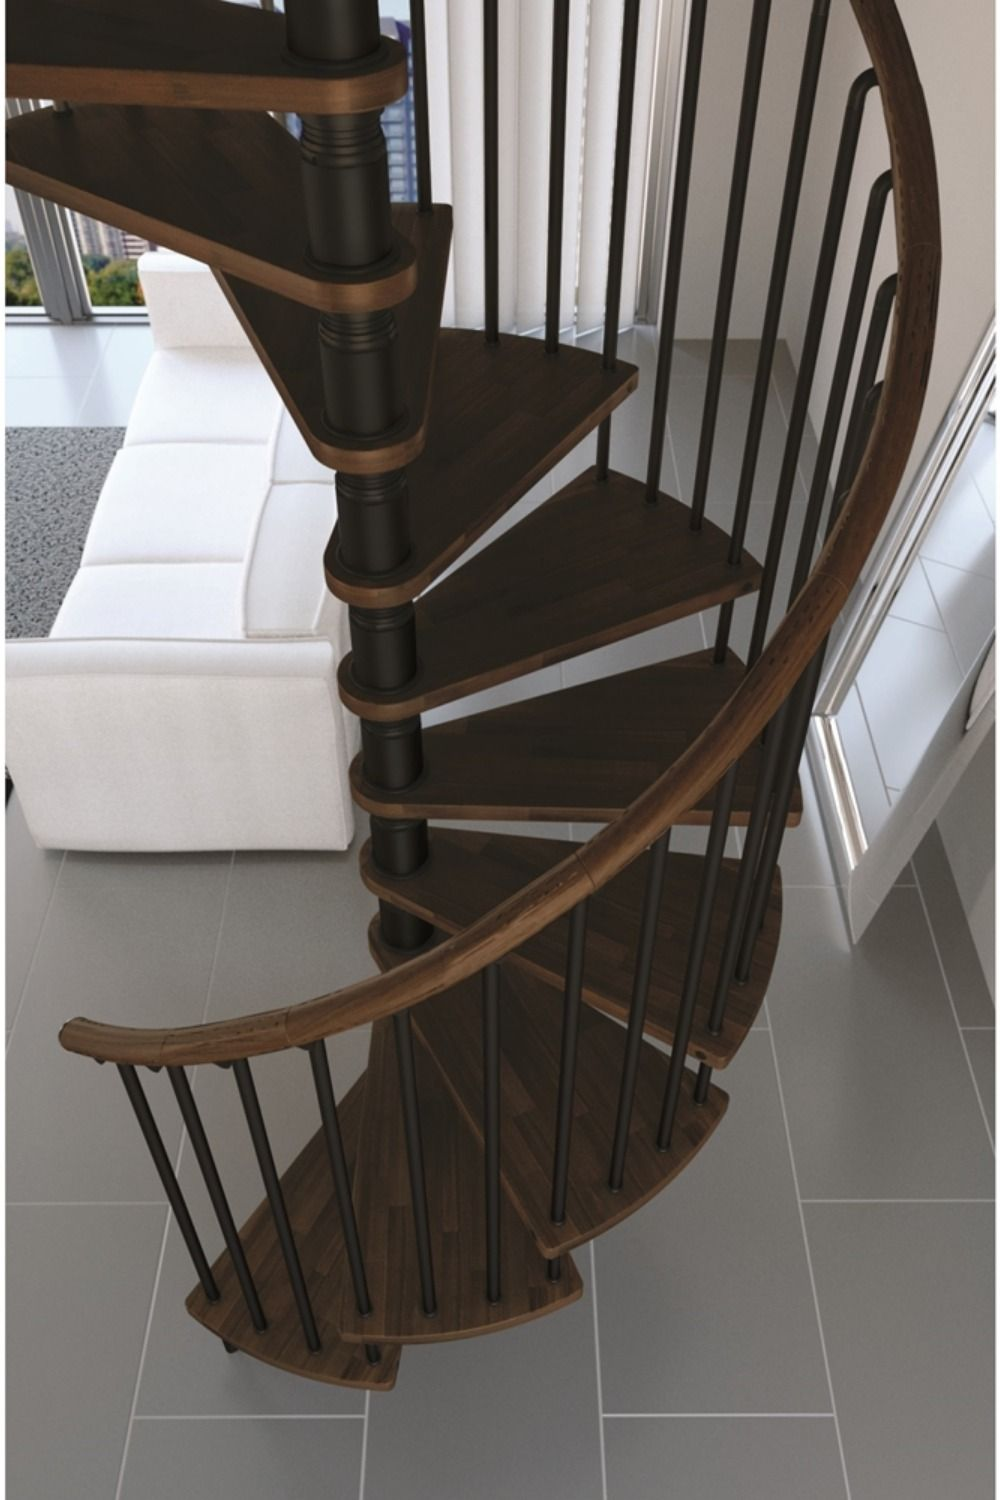 Spiral Stair Kit Walnut Wood Spsgw Wal Architectural   Painting Metal Spiral Staircase   Stair Case   Staircase Kit   Stair Railing   Powder Coating   Spray Paint